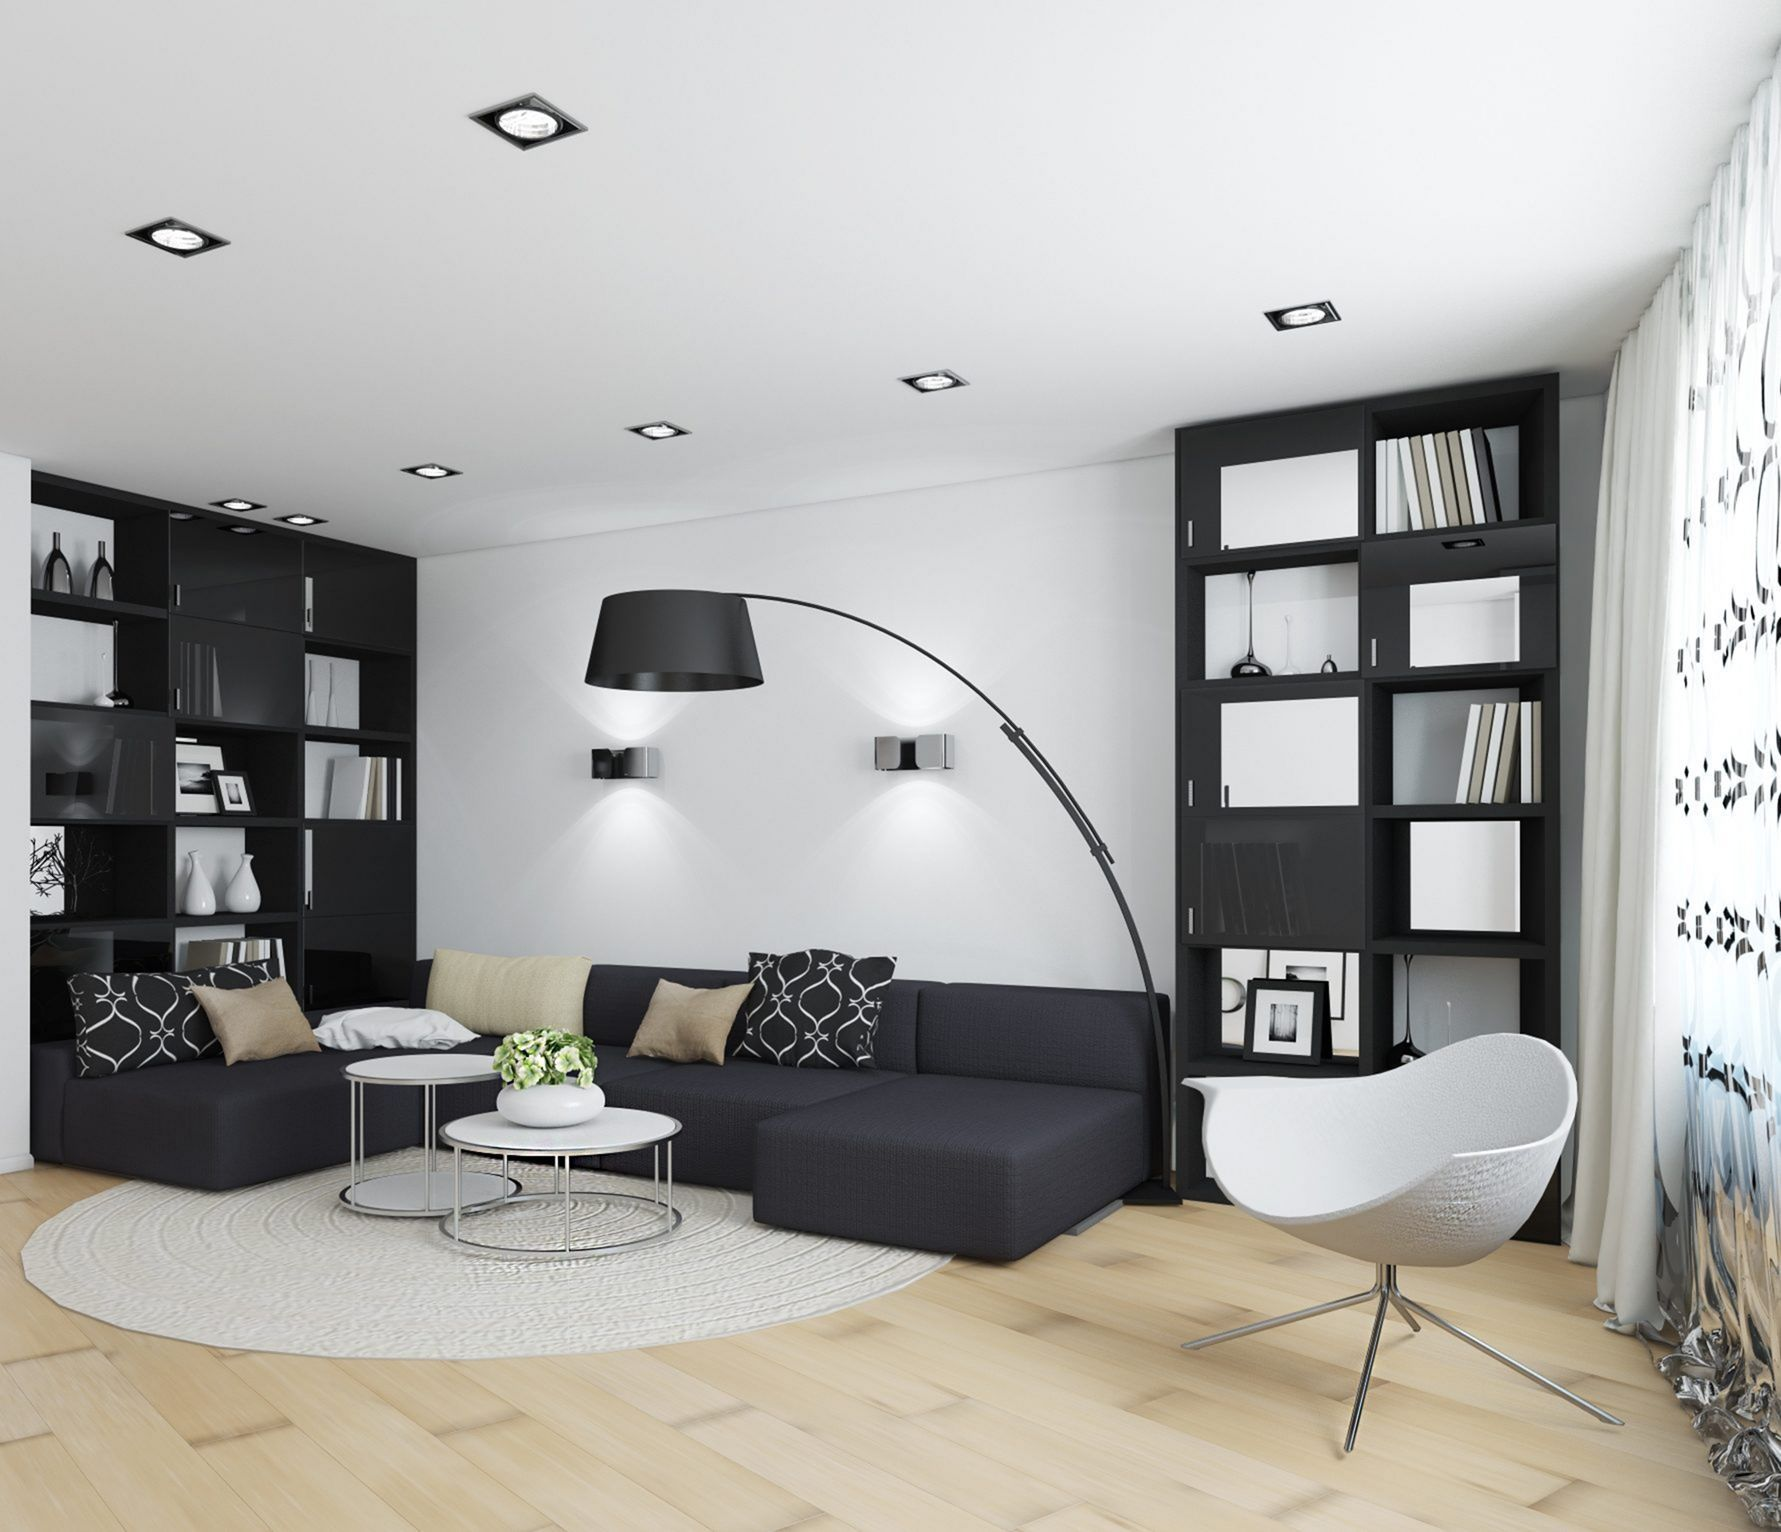 30 Black White Living Rooms That Work Their Monochrome Magic: 25 Amazing Black And White Interior Ideas For Dream Home